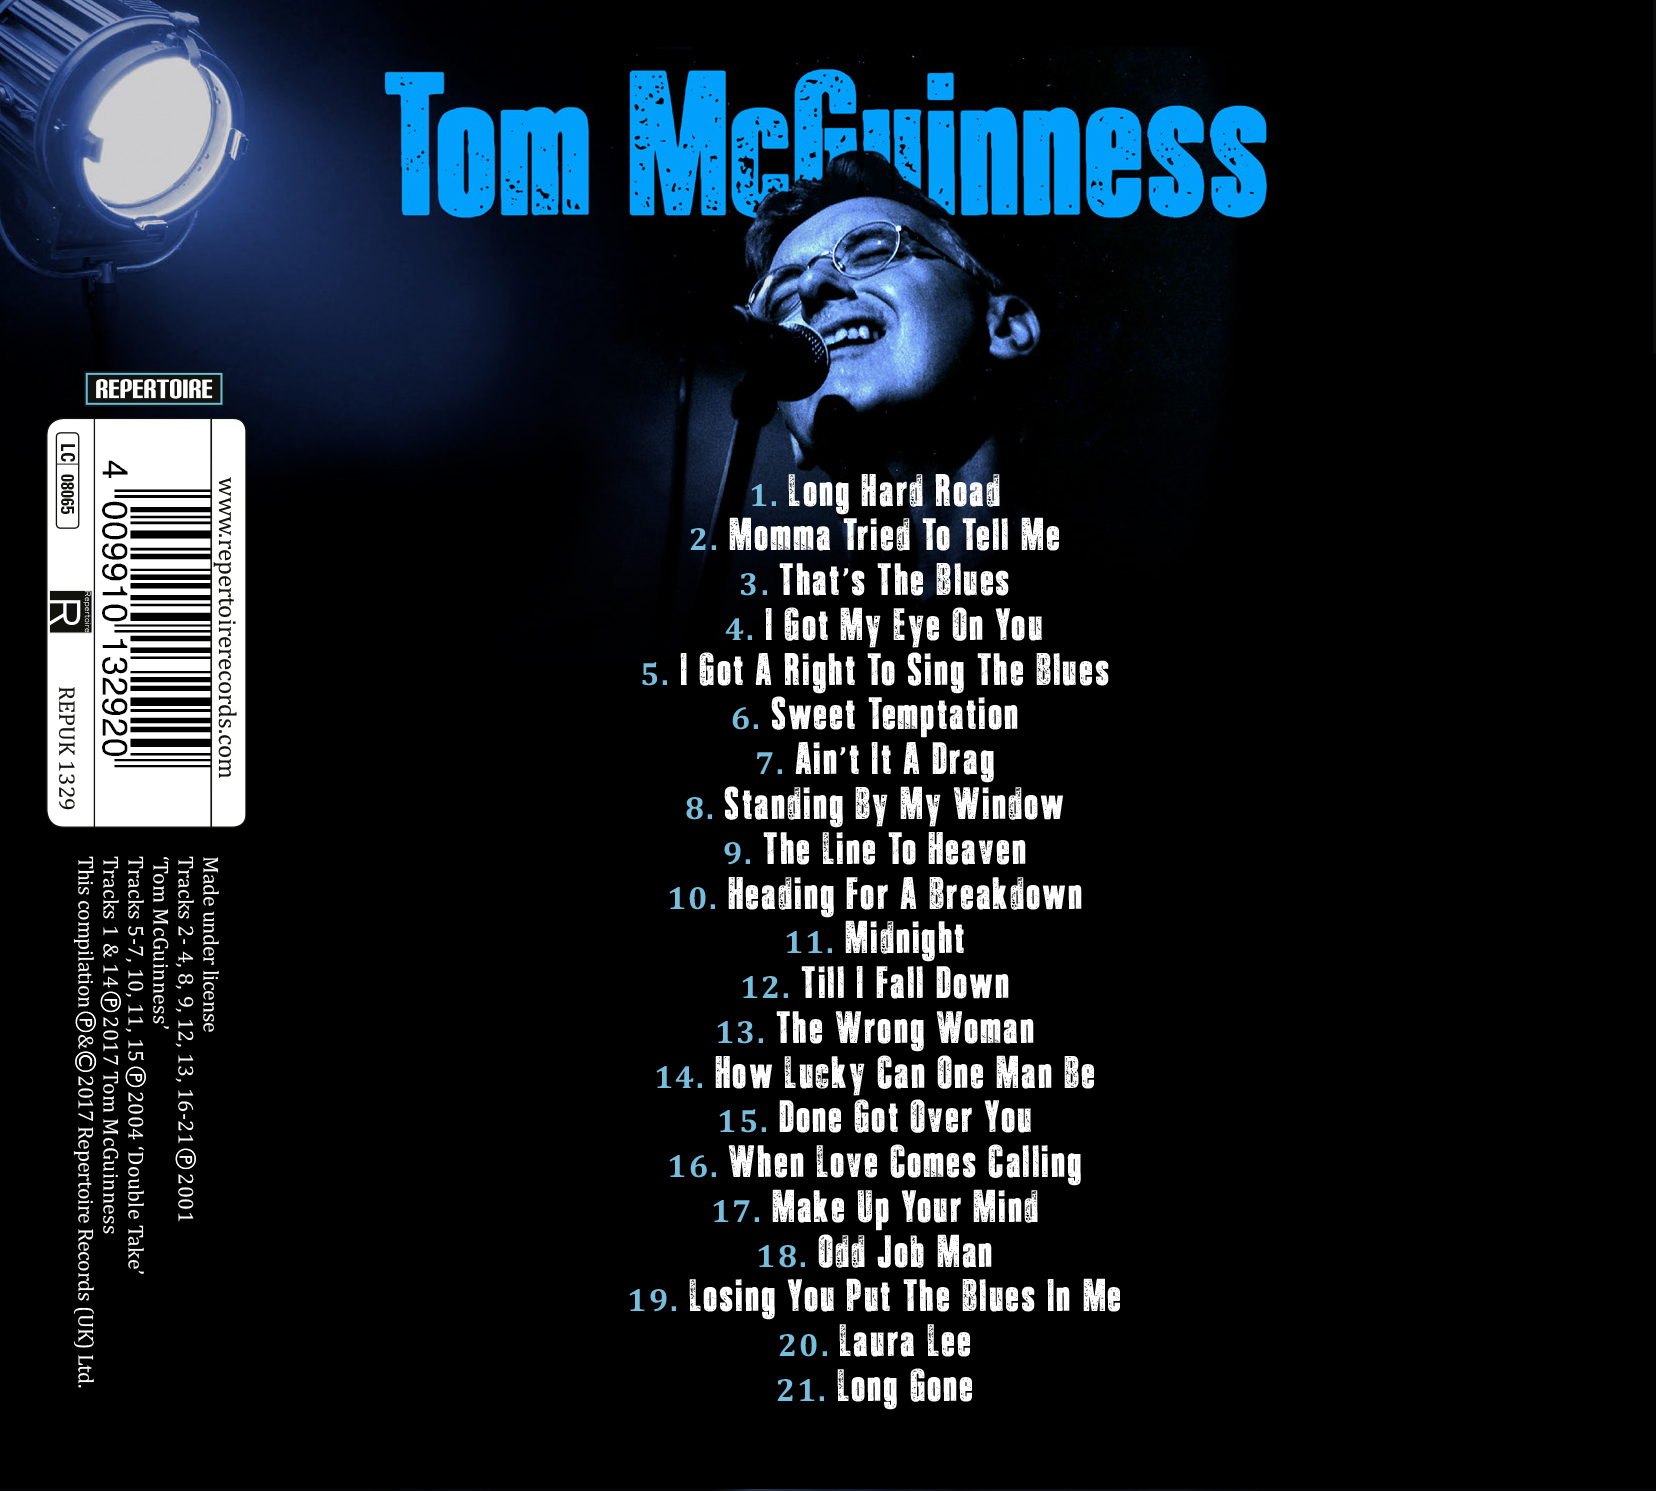 Tom McGuinness - Playing For TIme